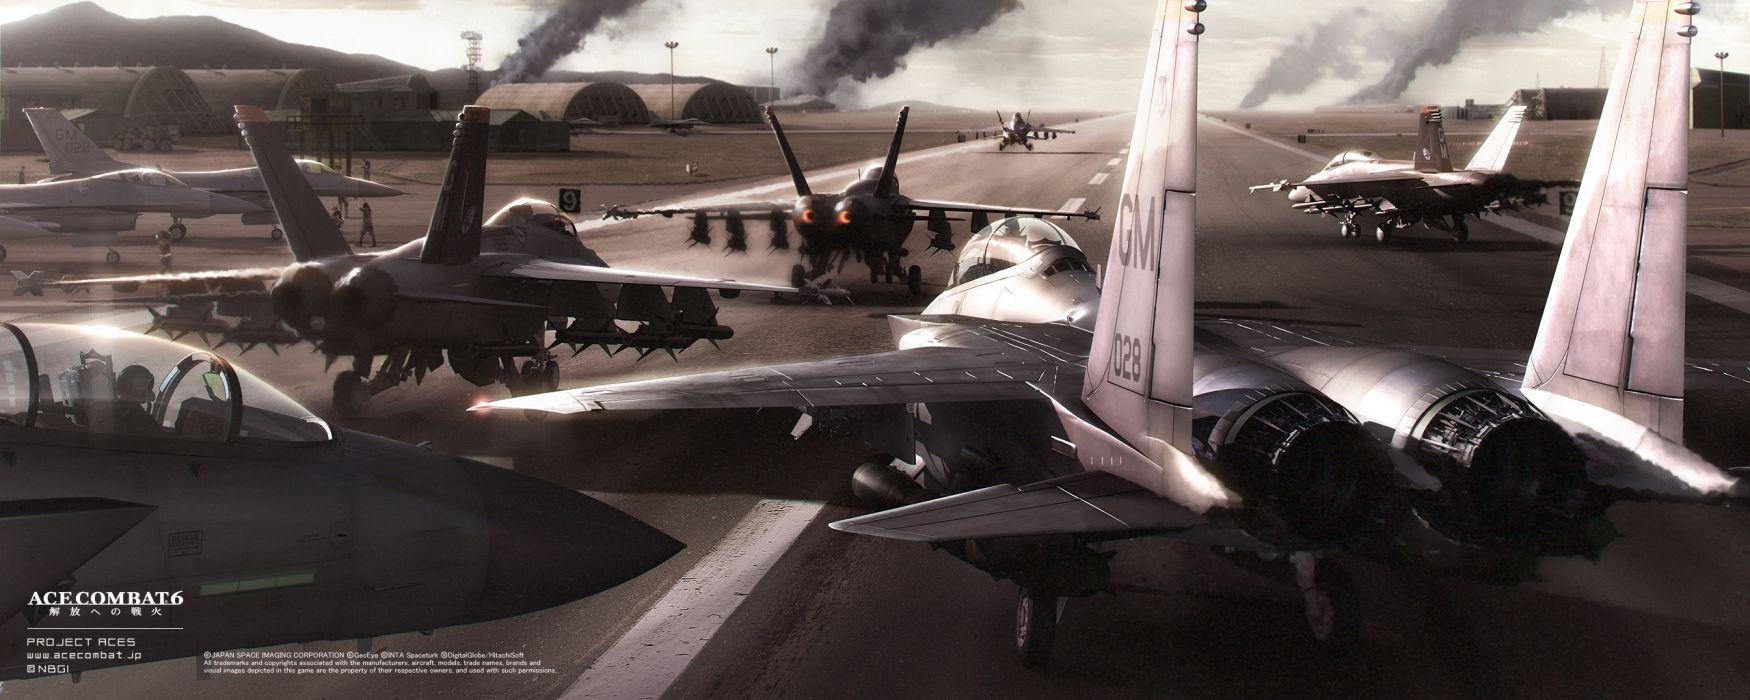 ACE COMBAT game jet airplane aircraft fighter plane military    vg wallpaper